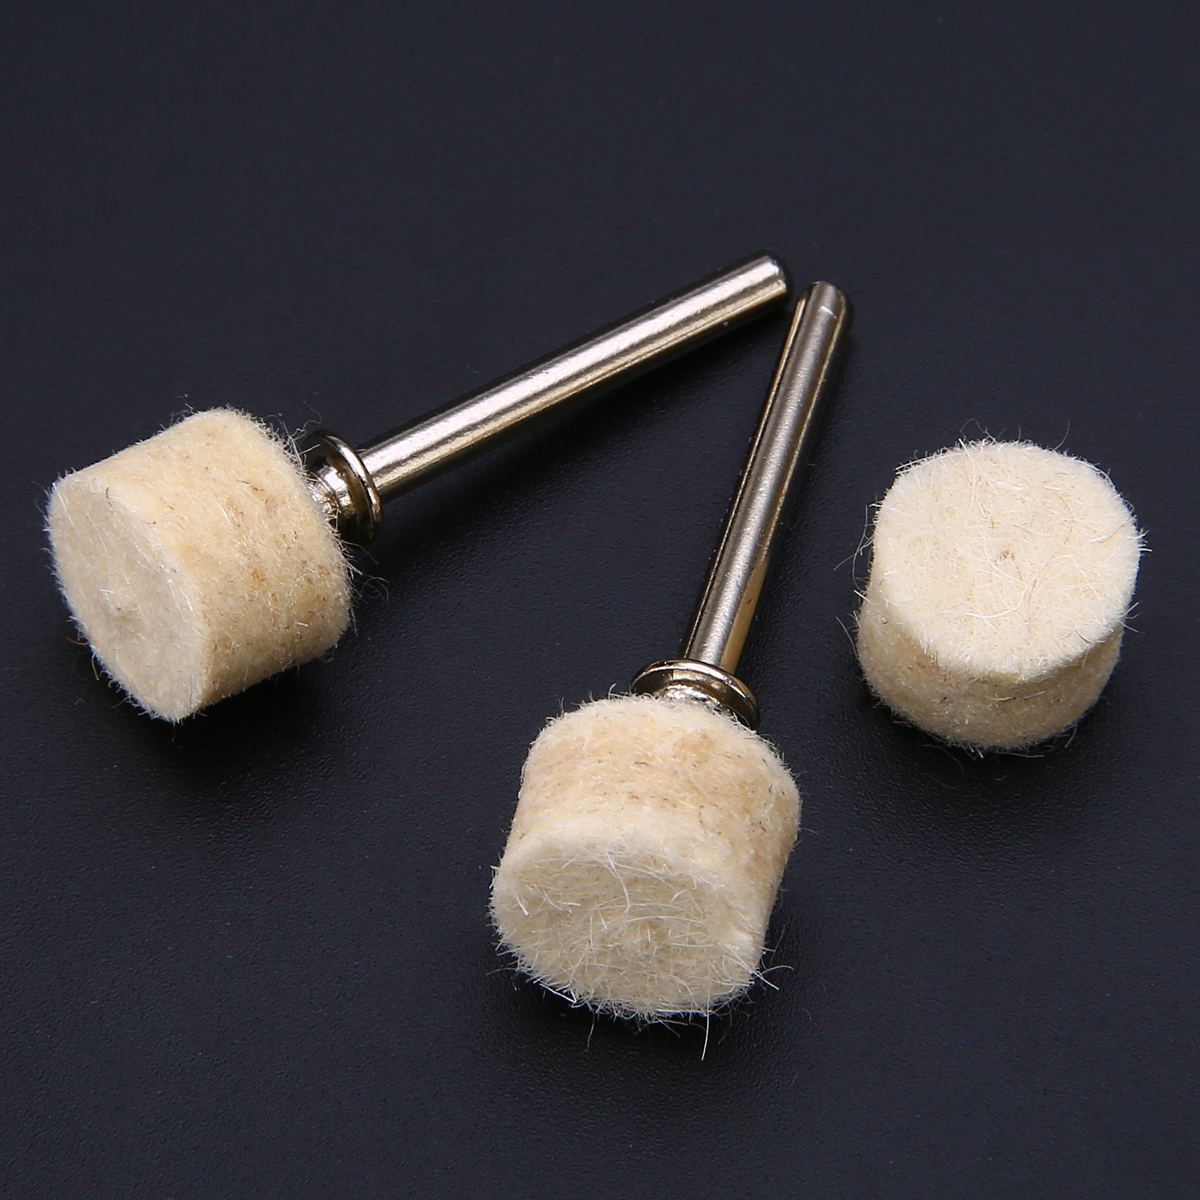 100pcs 13mm Wool Felt Polishing Wheels Buffing Grinding Pad With 2 Shanks For Abrasive Rotary Tool